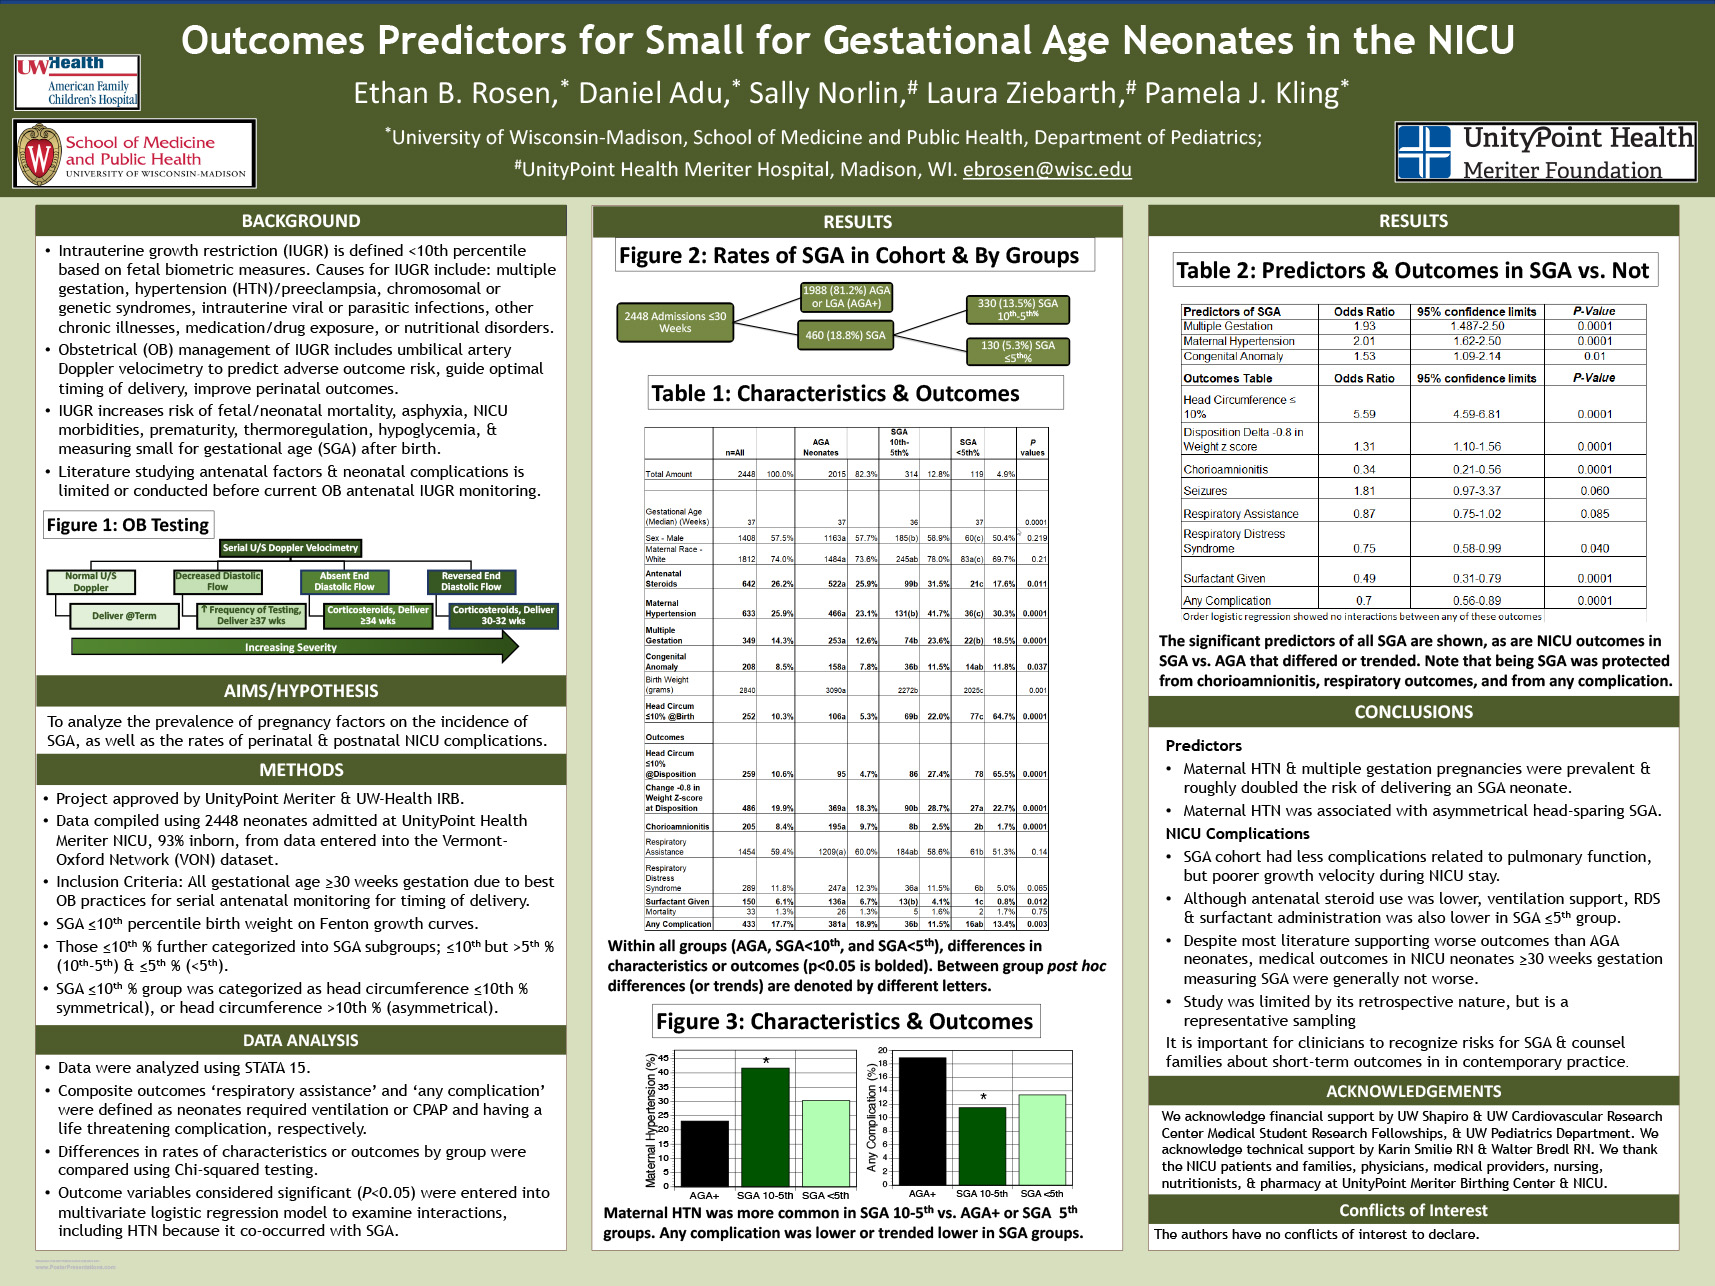 Predictors of Outcomes for Small for Gestational Age Neonates in the NICU poster image